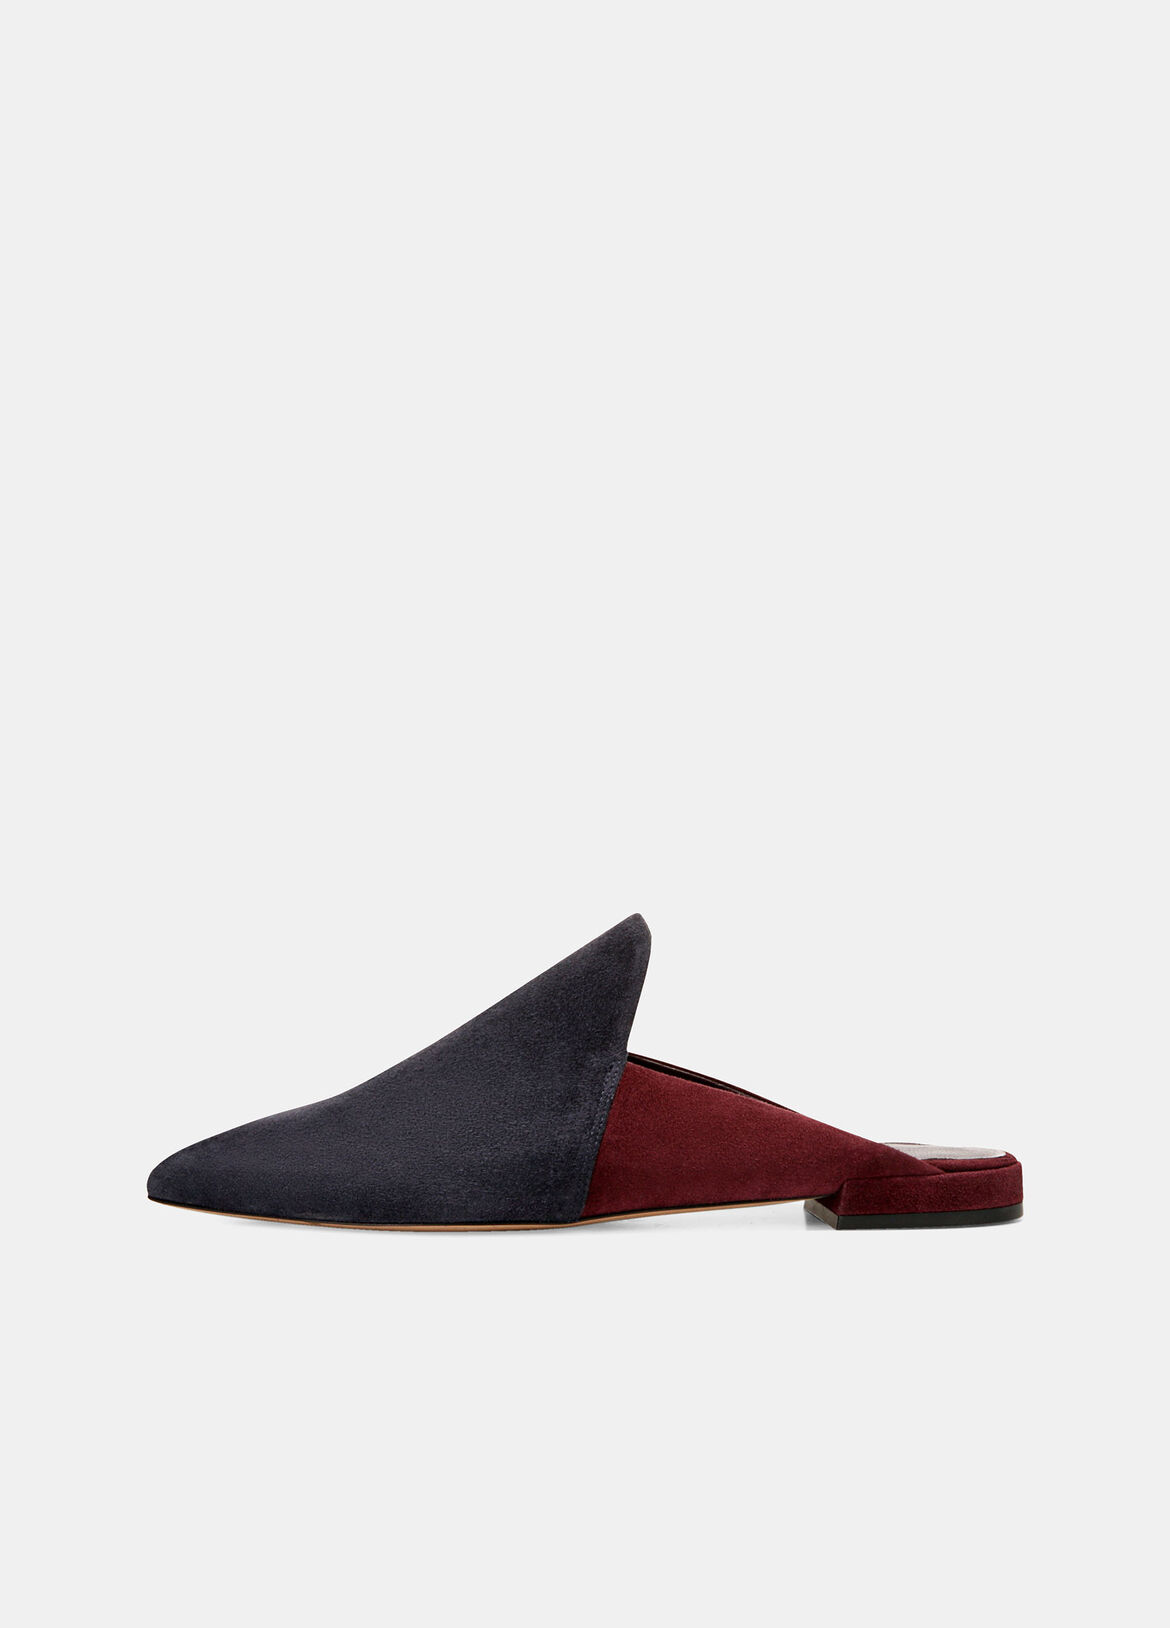 A nod to the season's jewel-tone colors, the Darby is crafted in Italy from supple suede. It has smooth leather linings and a refined, pointed toe.